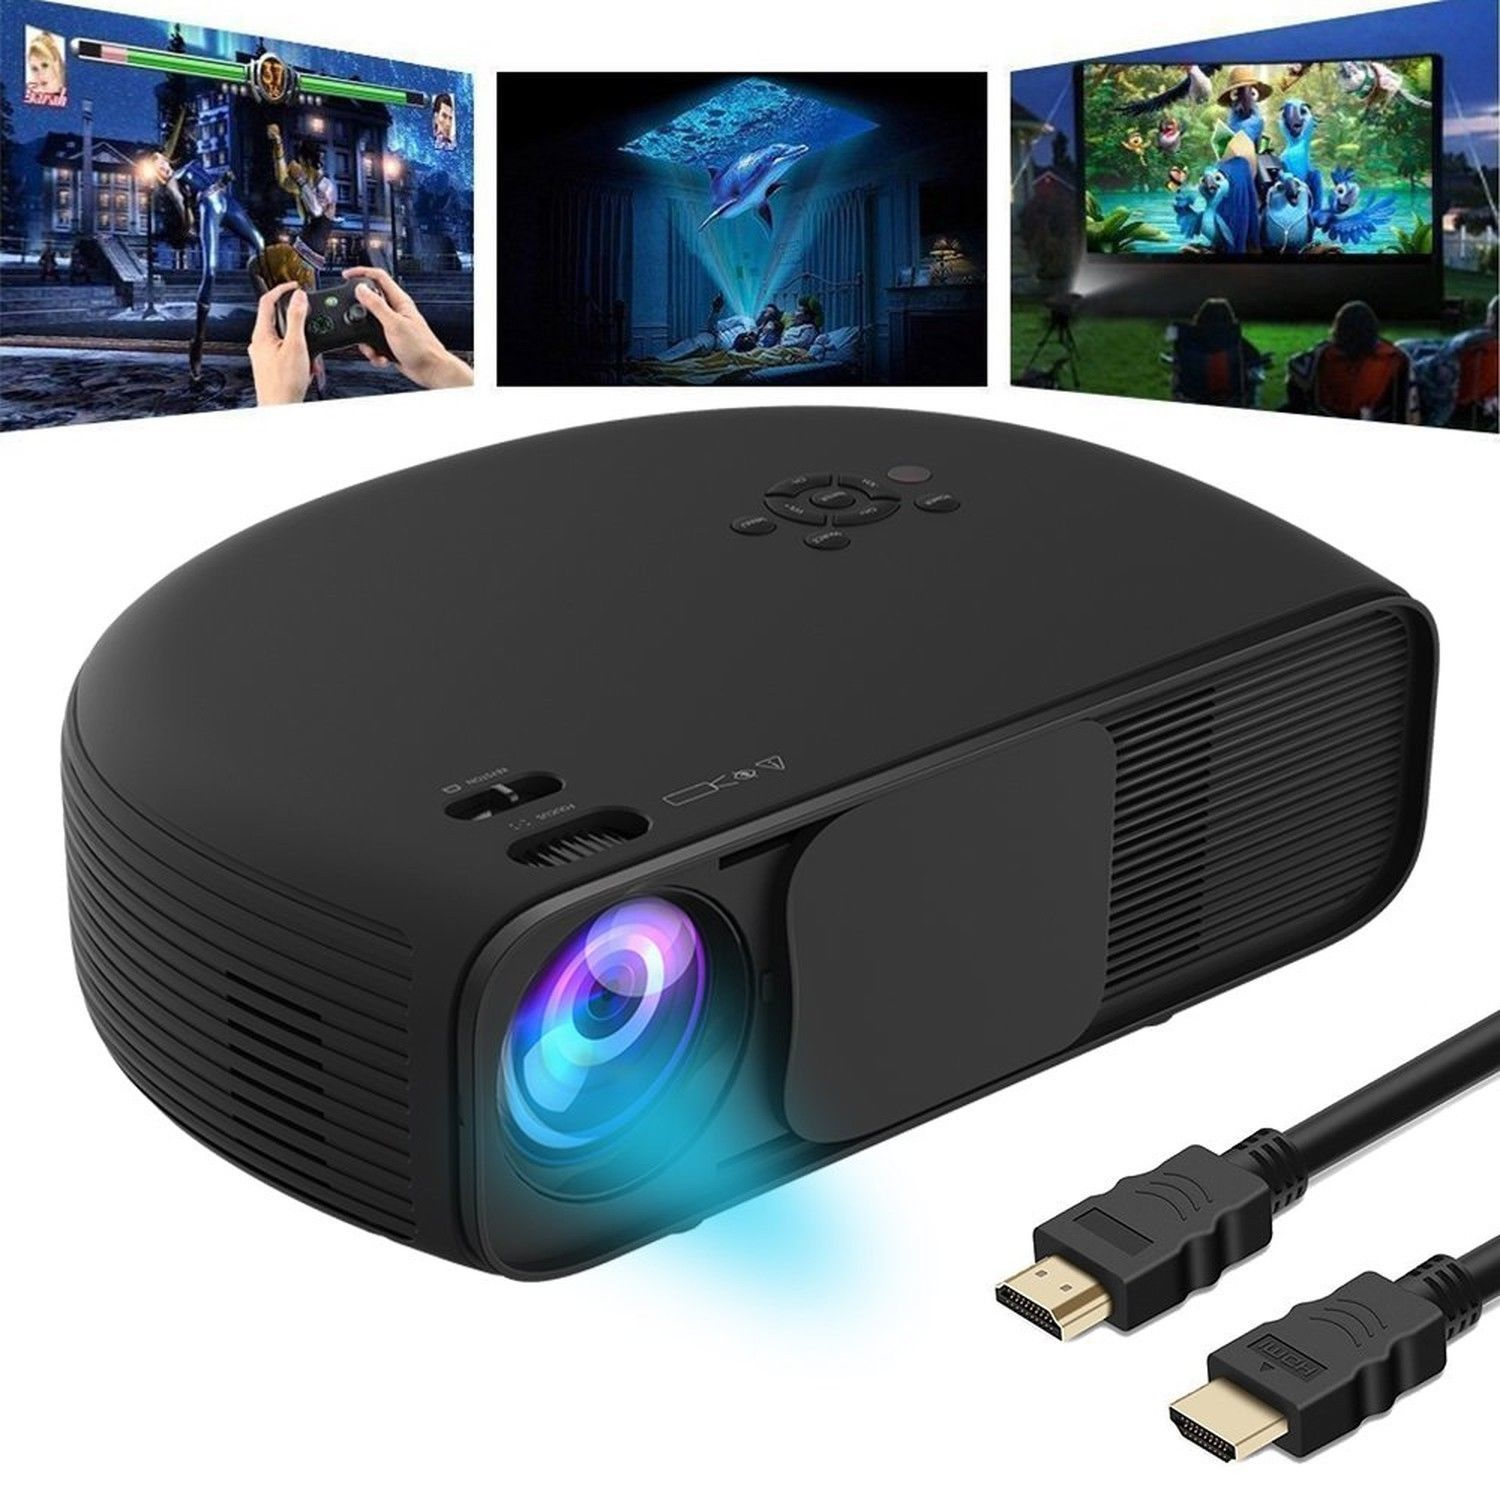 GOXMGO Video Projector 1080P HD LED Portable Movie Projector 3500 Lumens Proj...